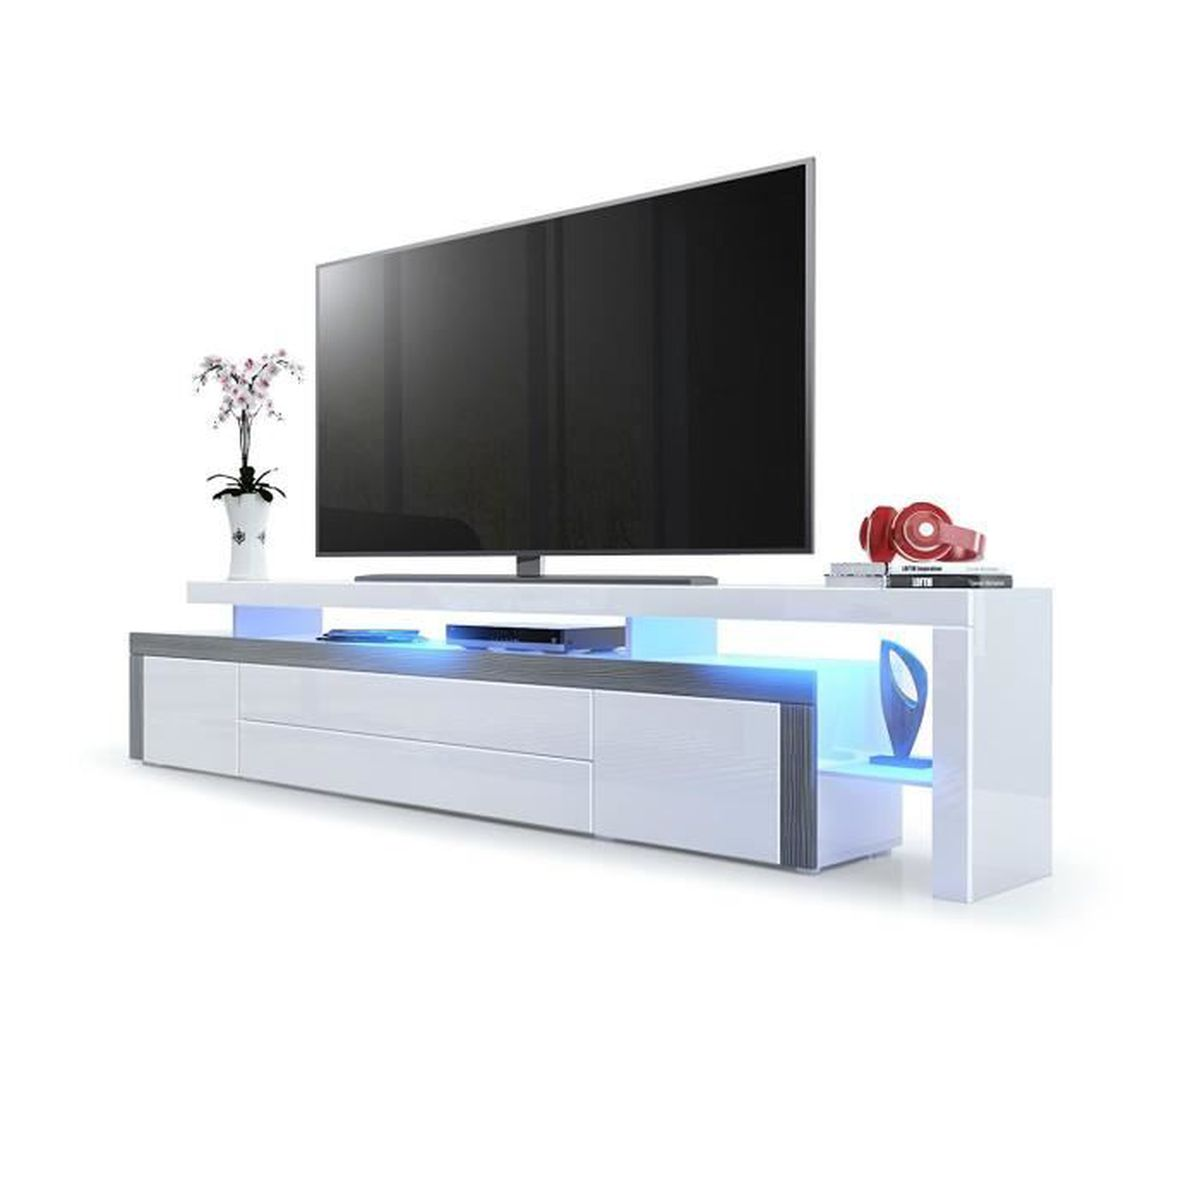 Meuble tv bas corps en blanc haute brillance bordure en - Meuble tv bas blanc ...